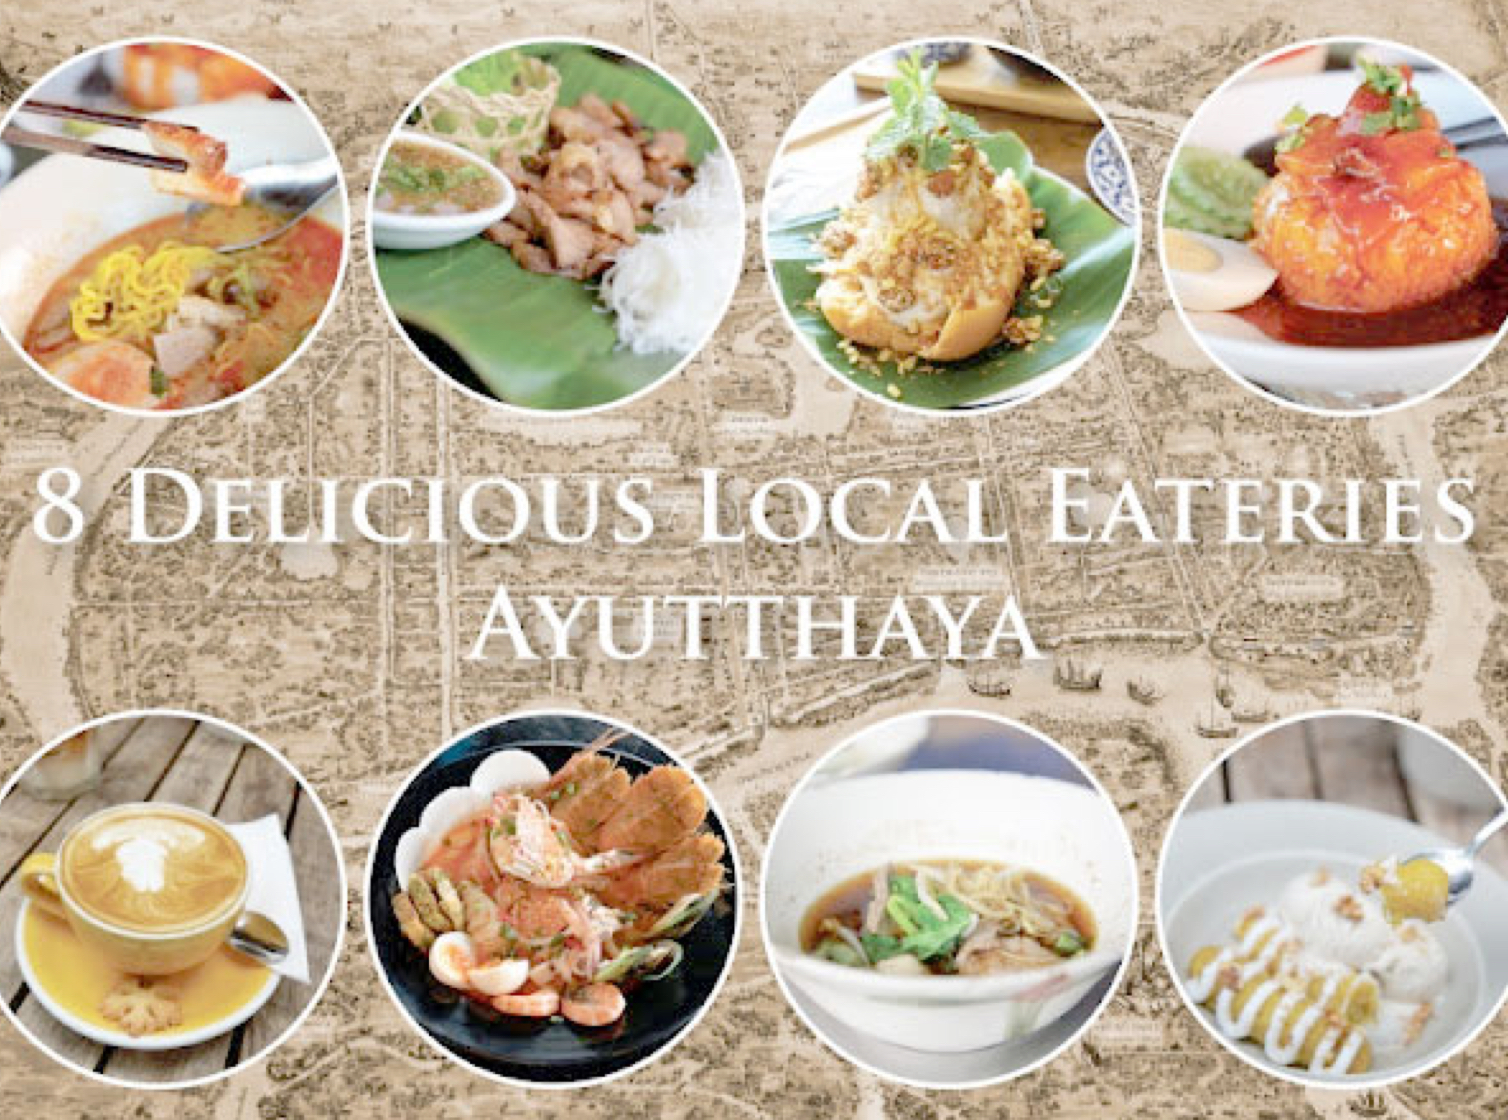 8 Delicious Local Eateries in Ayutthaya, Thailand